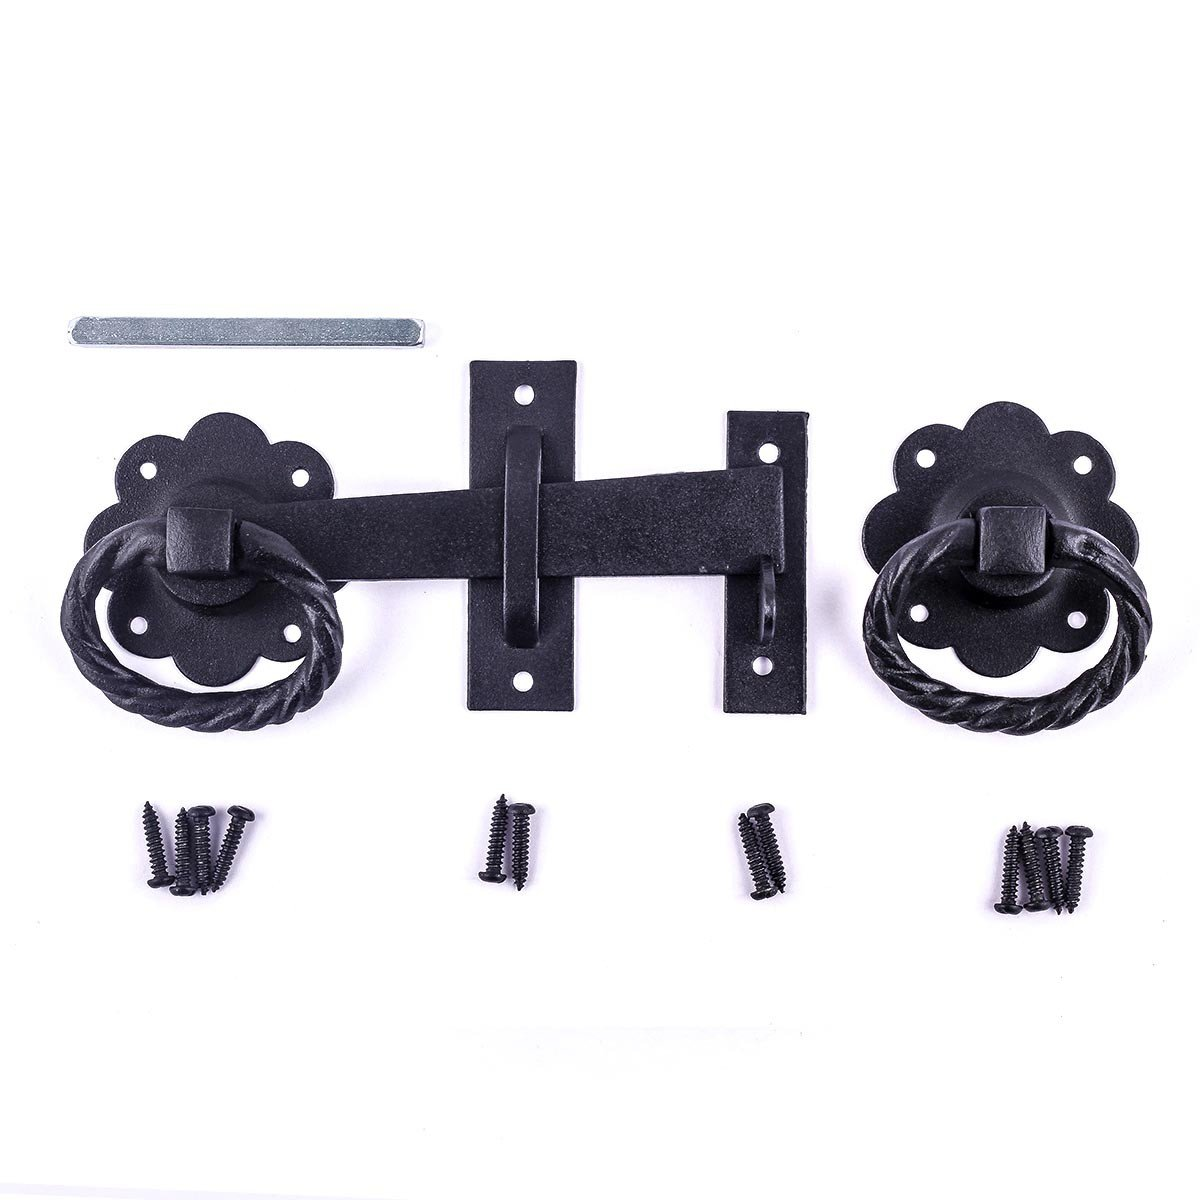 Heavy Duty Wrought Iron Floral Ring Gate Latch Lock Set 5'' Width | Renovator's Supply